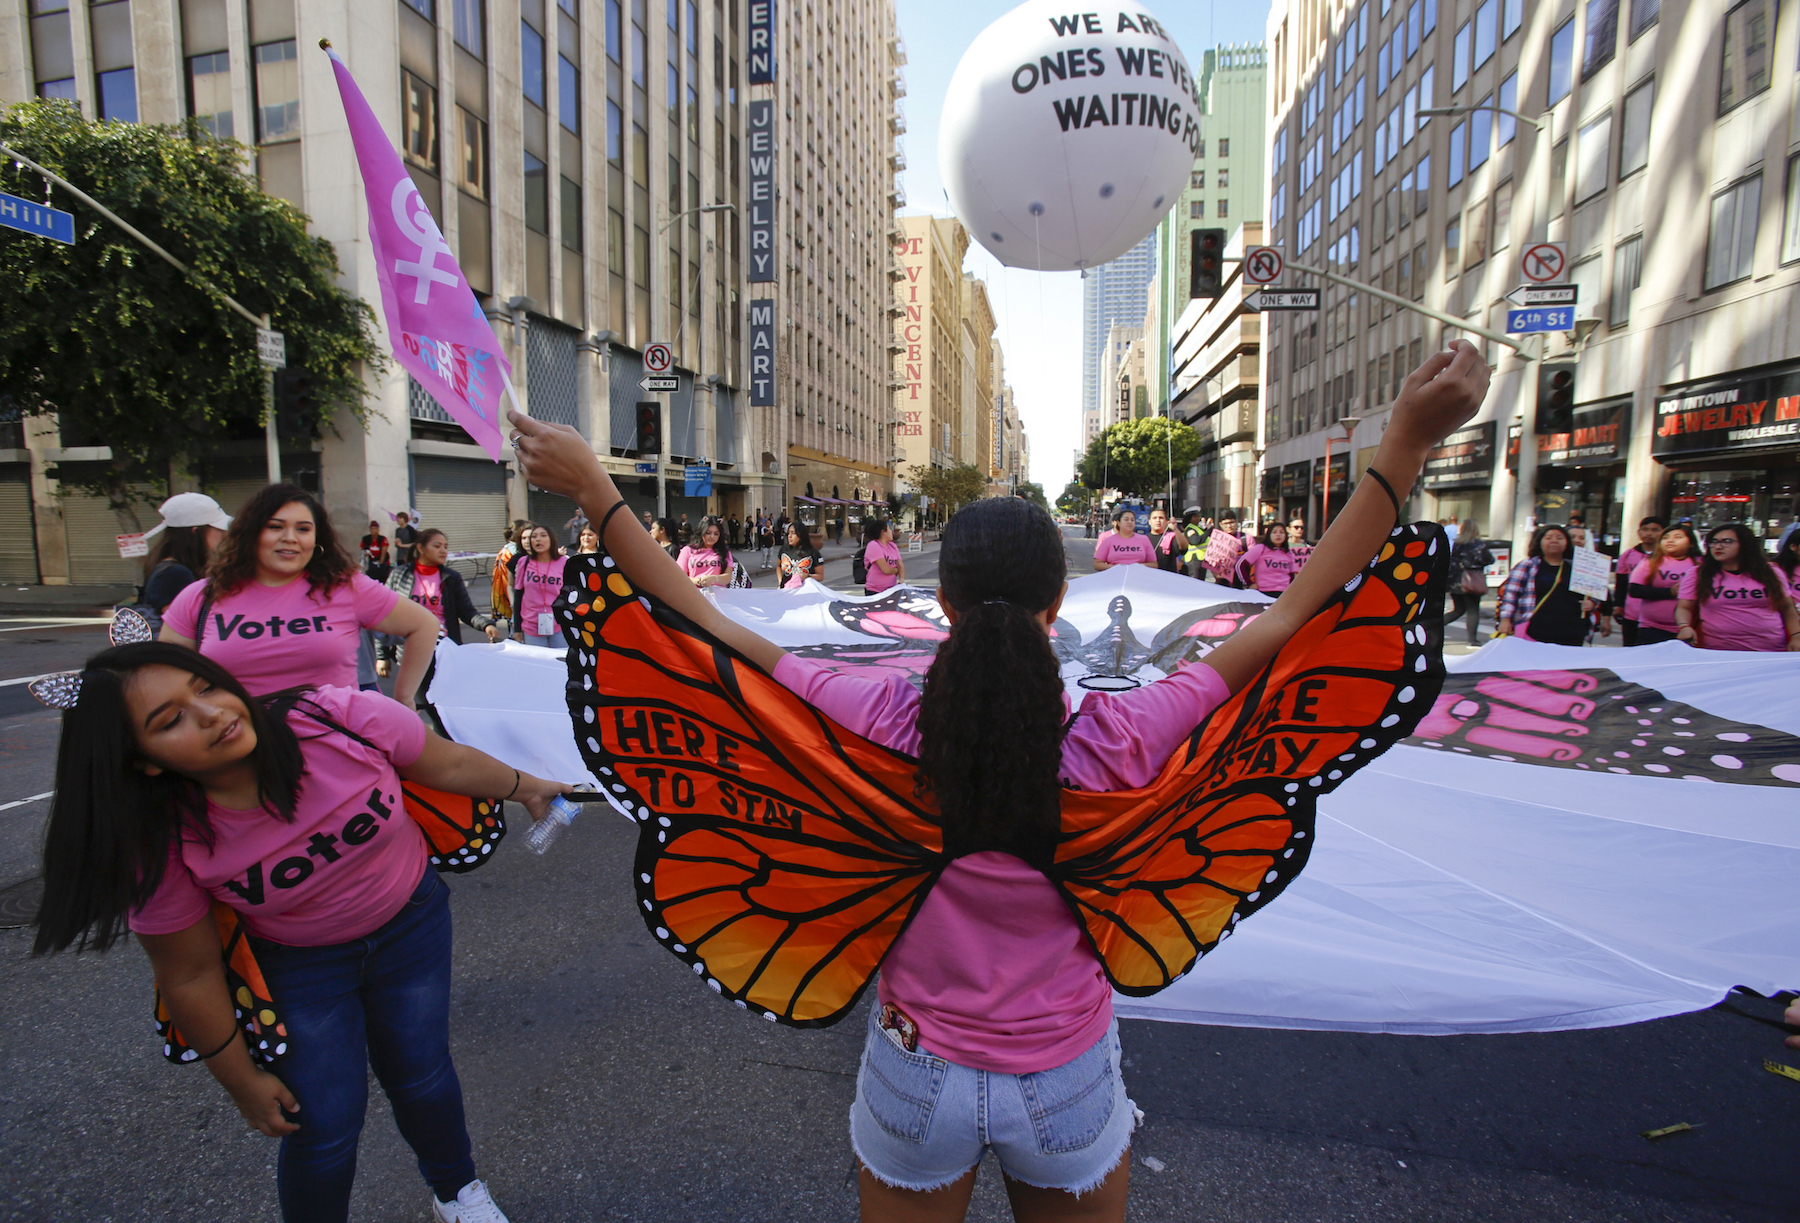 "<div class=""meta image-caption""><div class=""origin-logo origin-image ap""><span>AP</span></div><span class=""caption-text"">Women with ""Music Changing Lives"" rally at the Women's March in Los Angeles on Saturday, Jan. 19, 2019. (AP Photo/Damian Dovarganes)</span></div>"